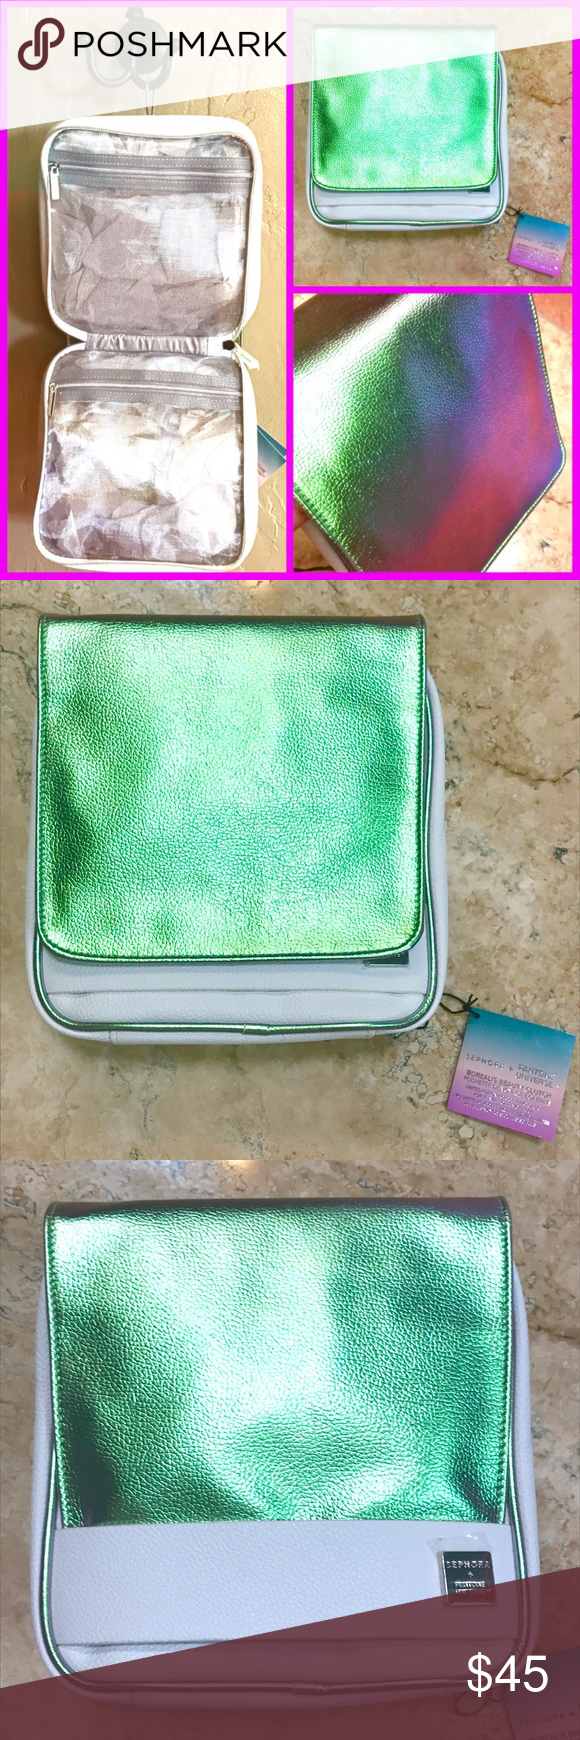 Sephora Pantone Holographic Makeup travel Case Sephora x